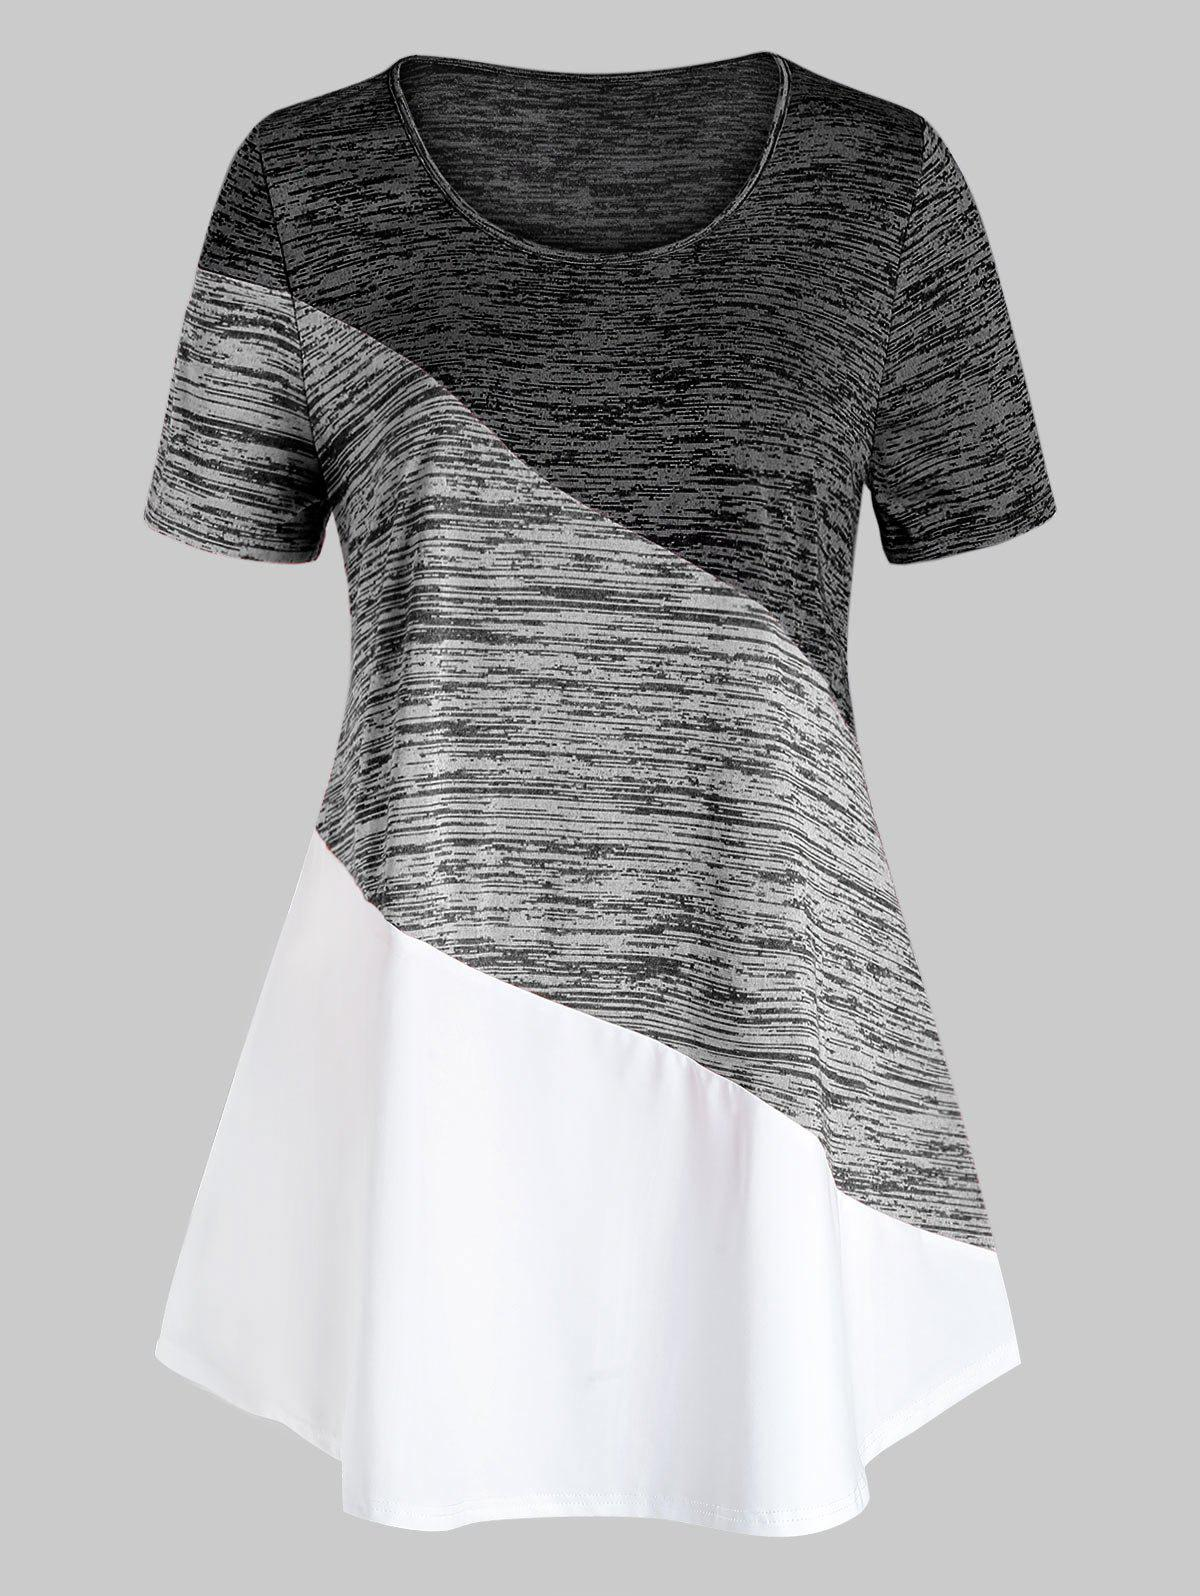 Plus Size Colorblock Marled T Shirt - LIGHT GRAY 2X